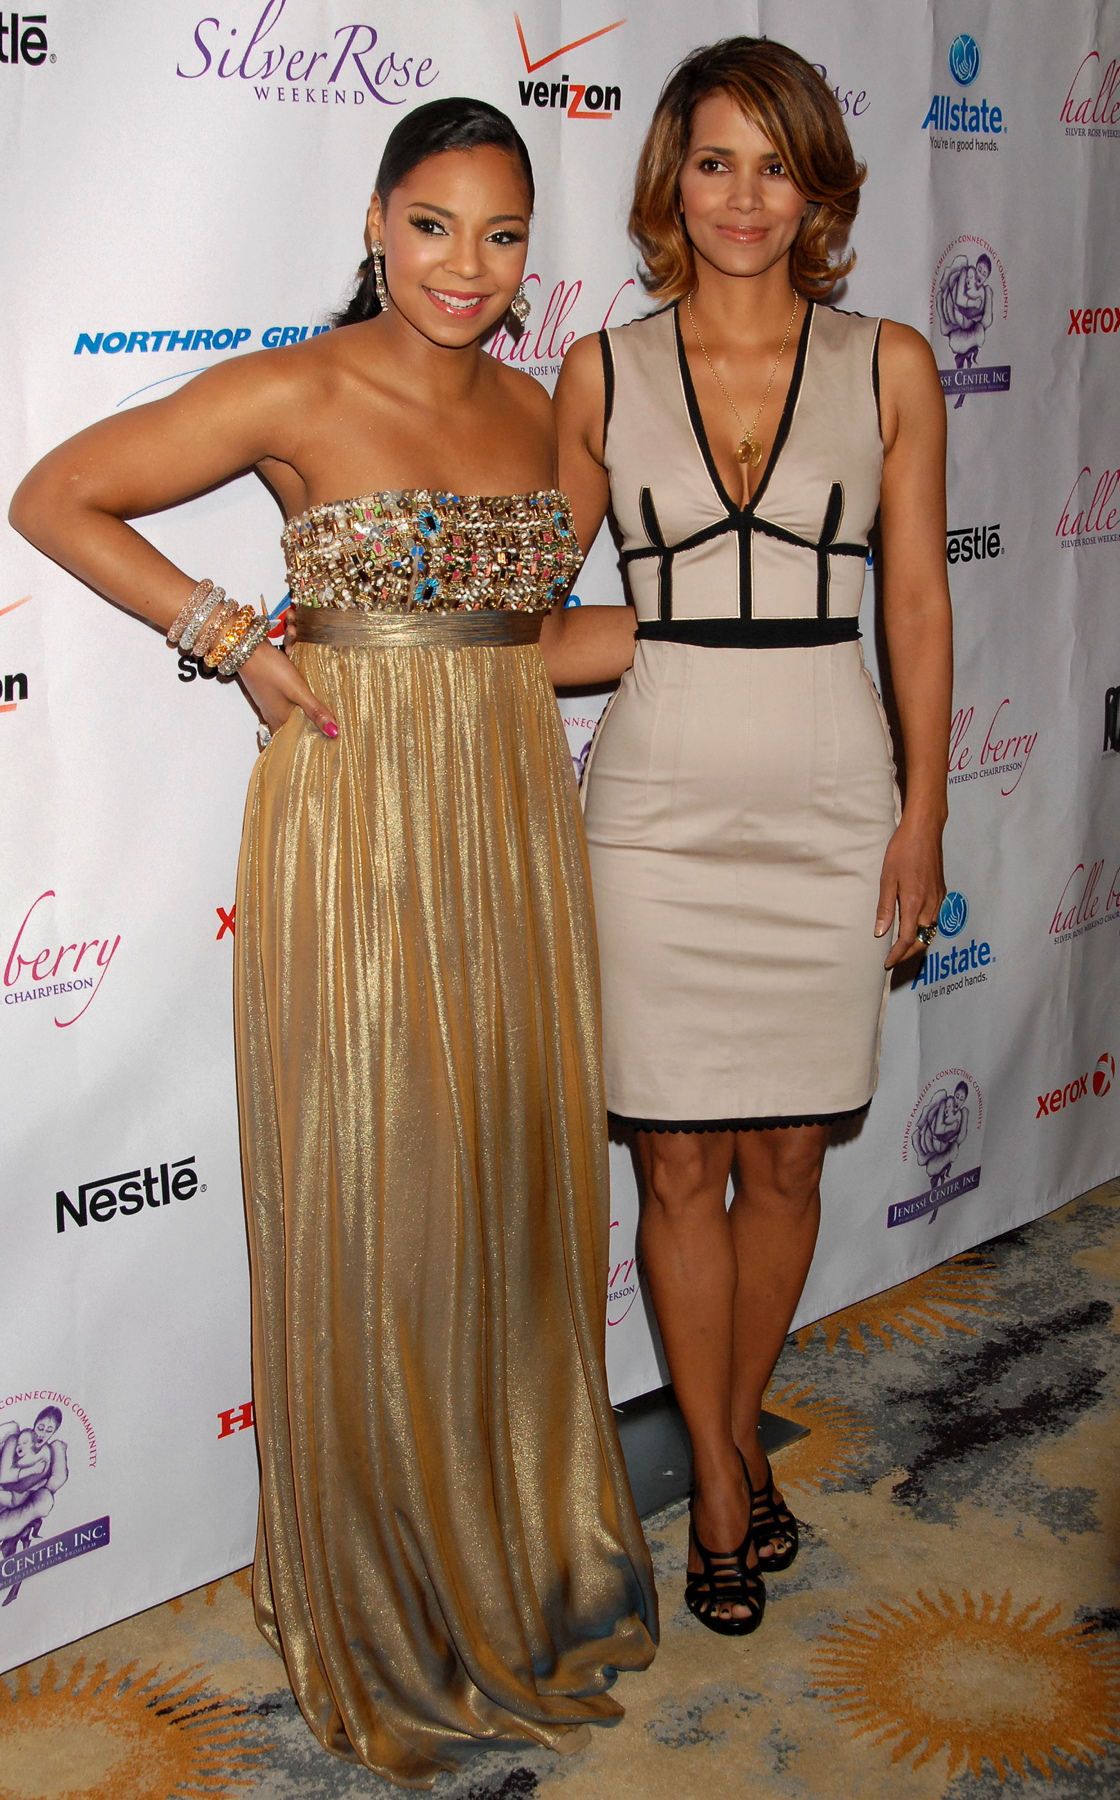 64083_Halle_Berry_2009_Jenesse_Silver_Rose_Gala_Auction_in_Beverly_Hills_107_122_243lo.jpg